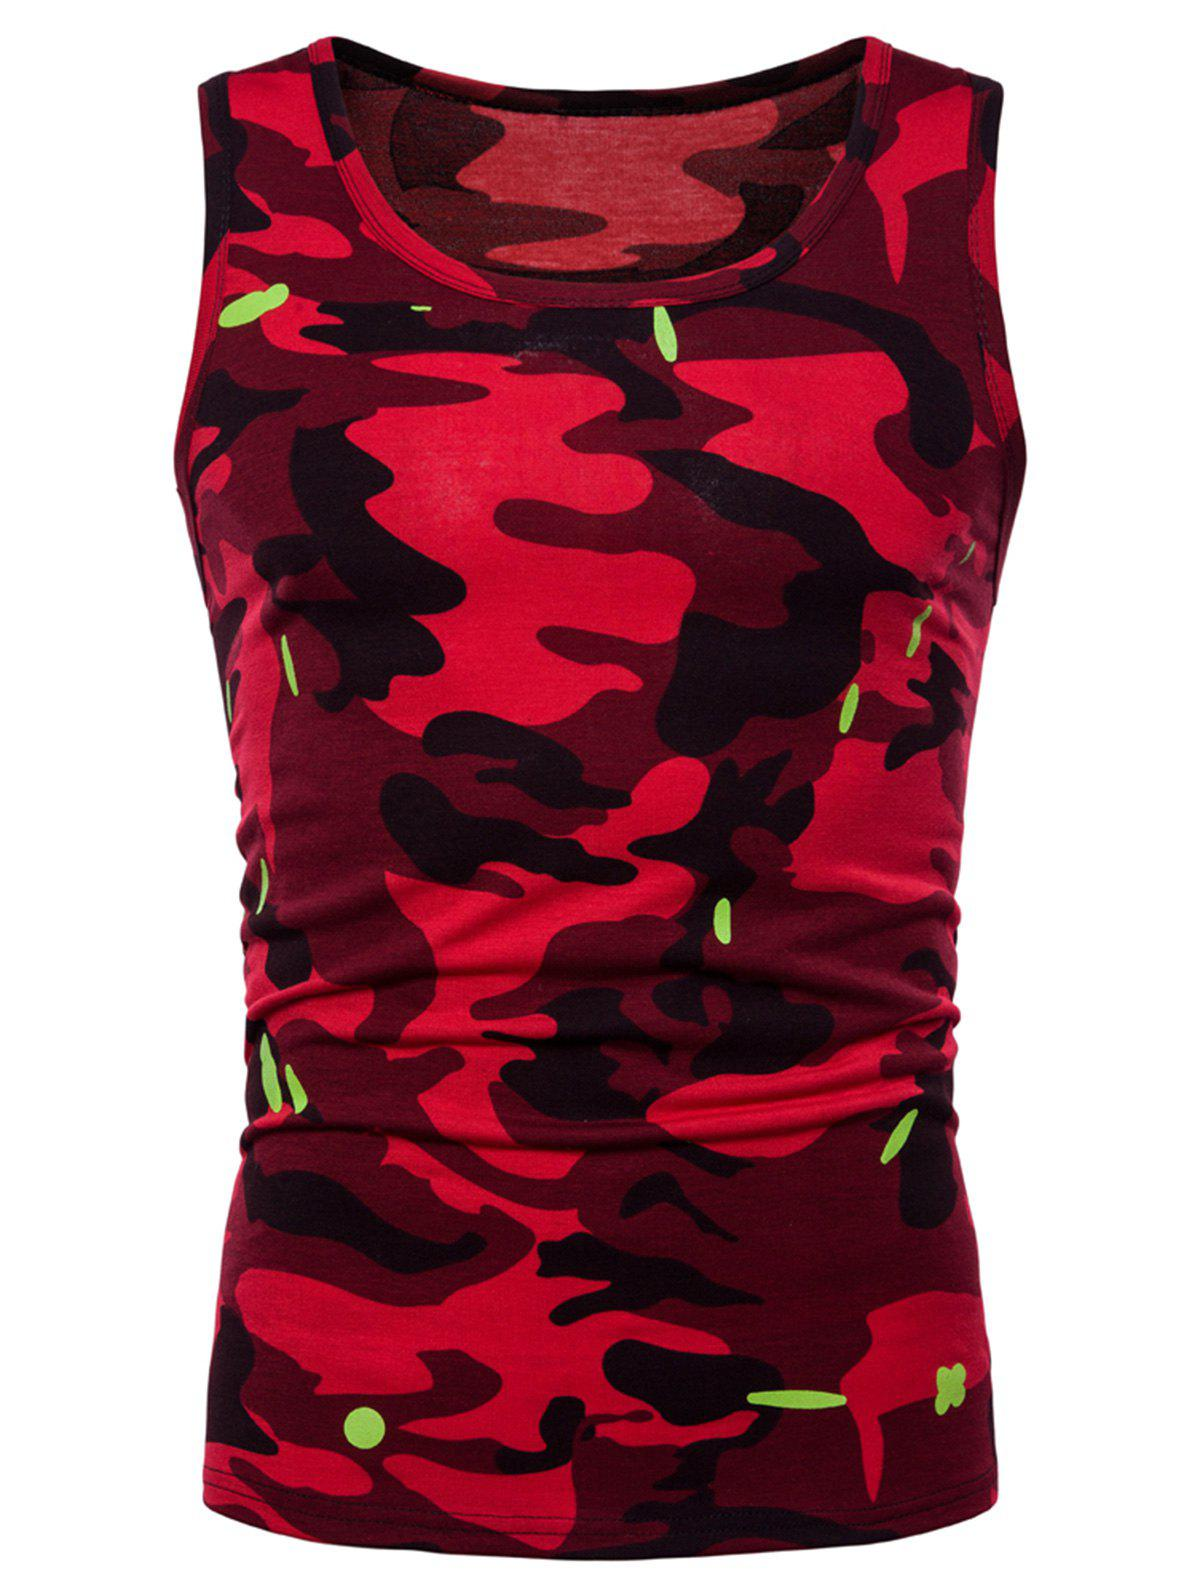 Affordable Relaxed Fit Camo Print Tank Top